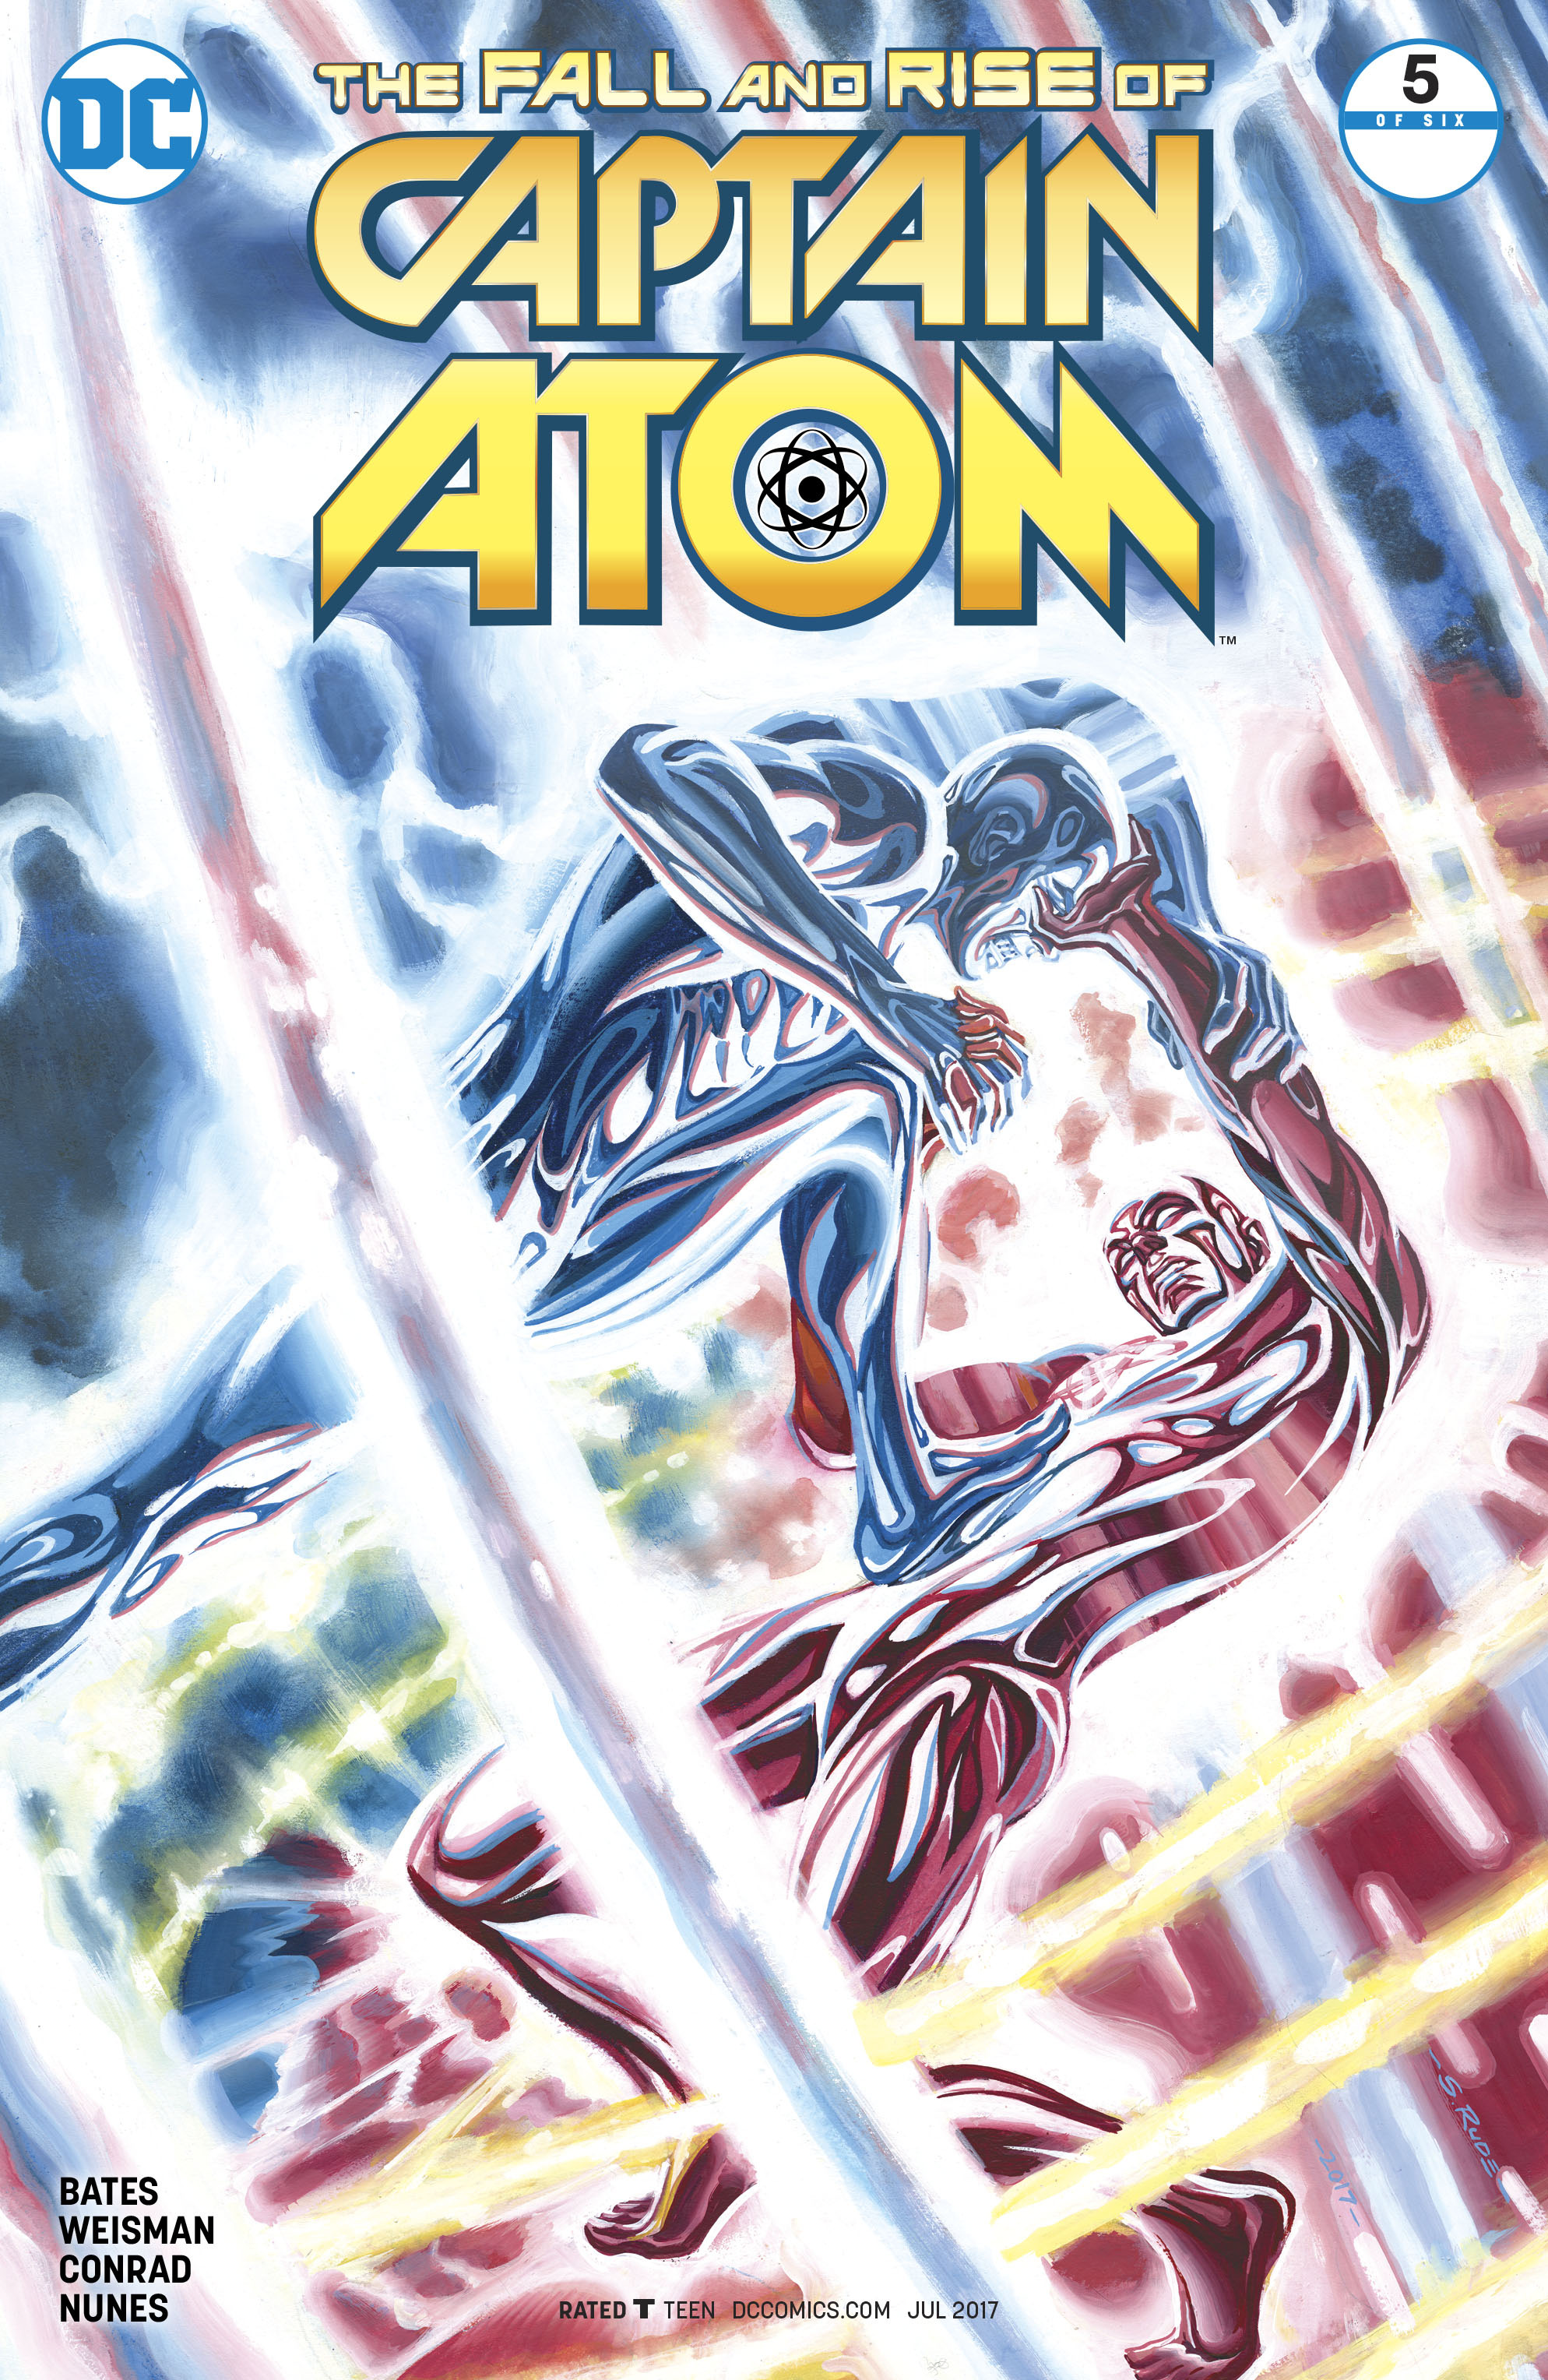 Read online The Fall and Rise of Captain Atom comic -  Issue #5 - 1